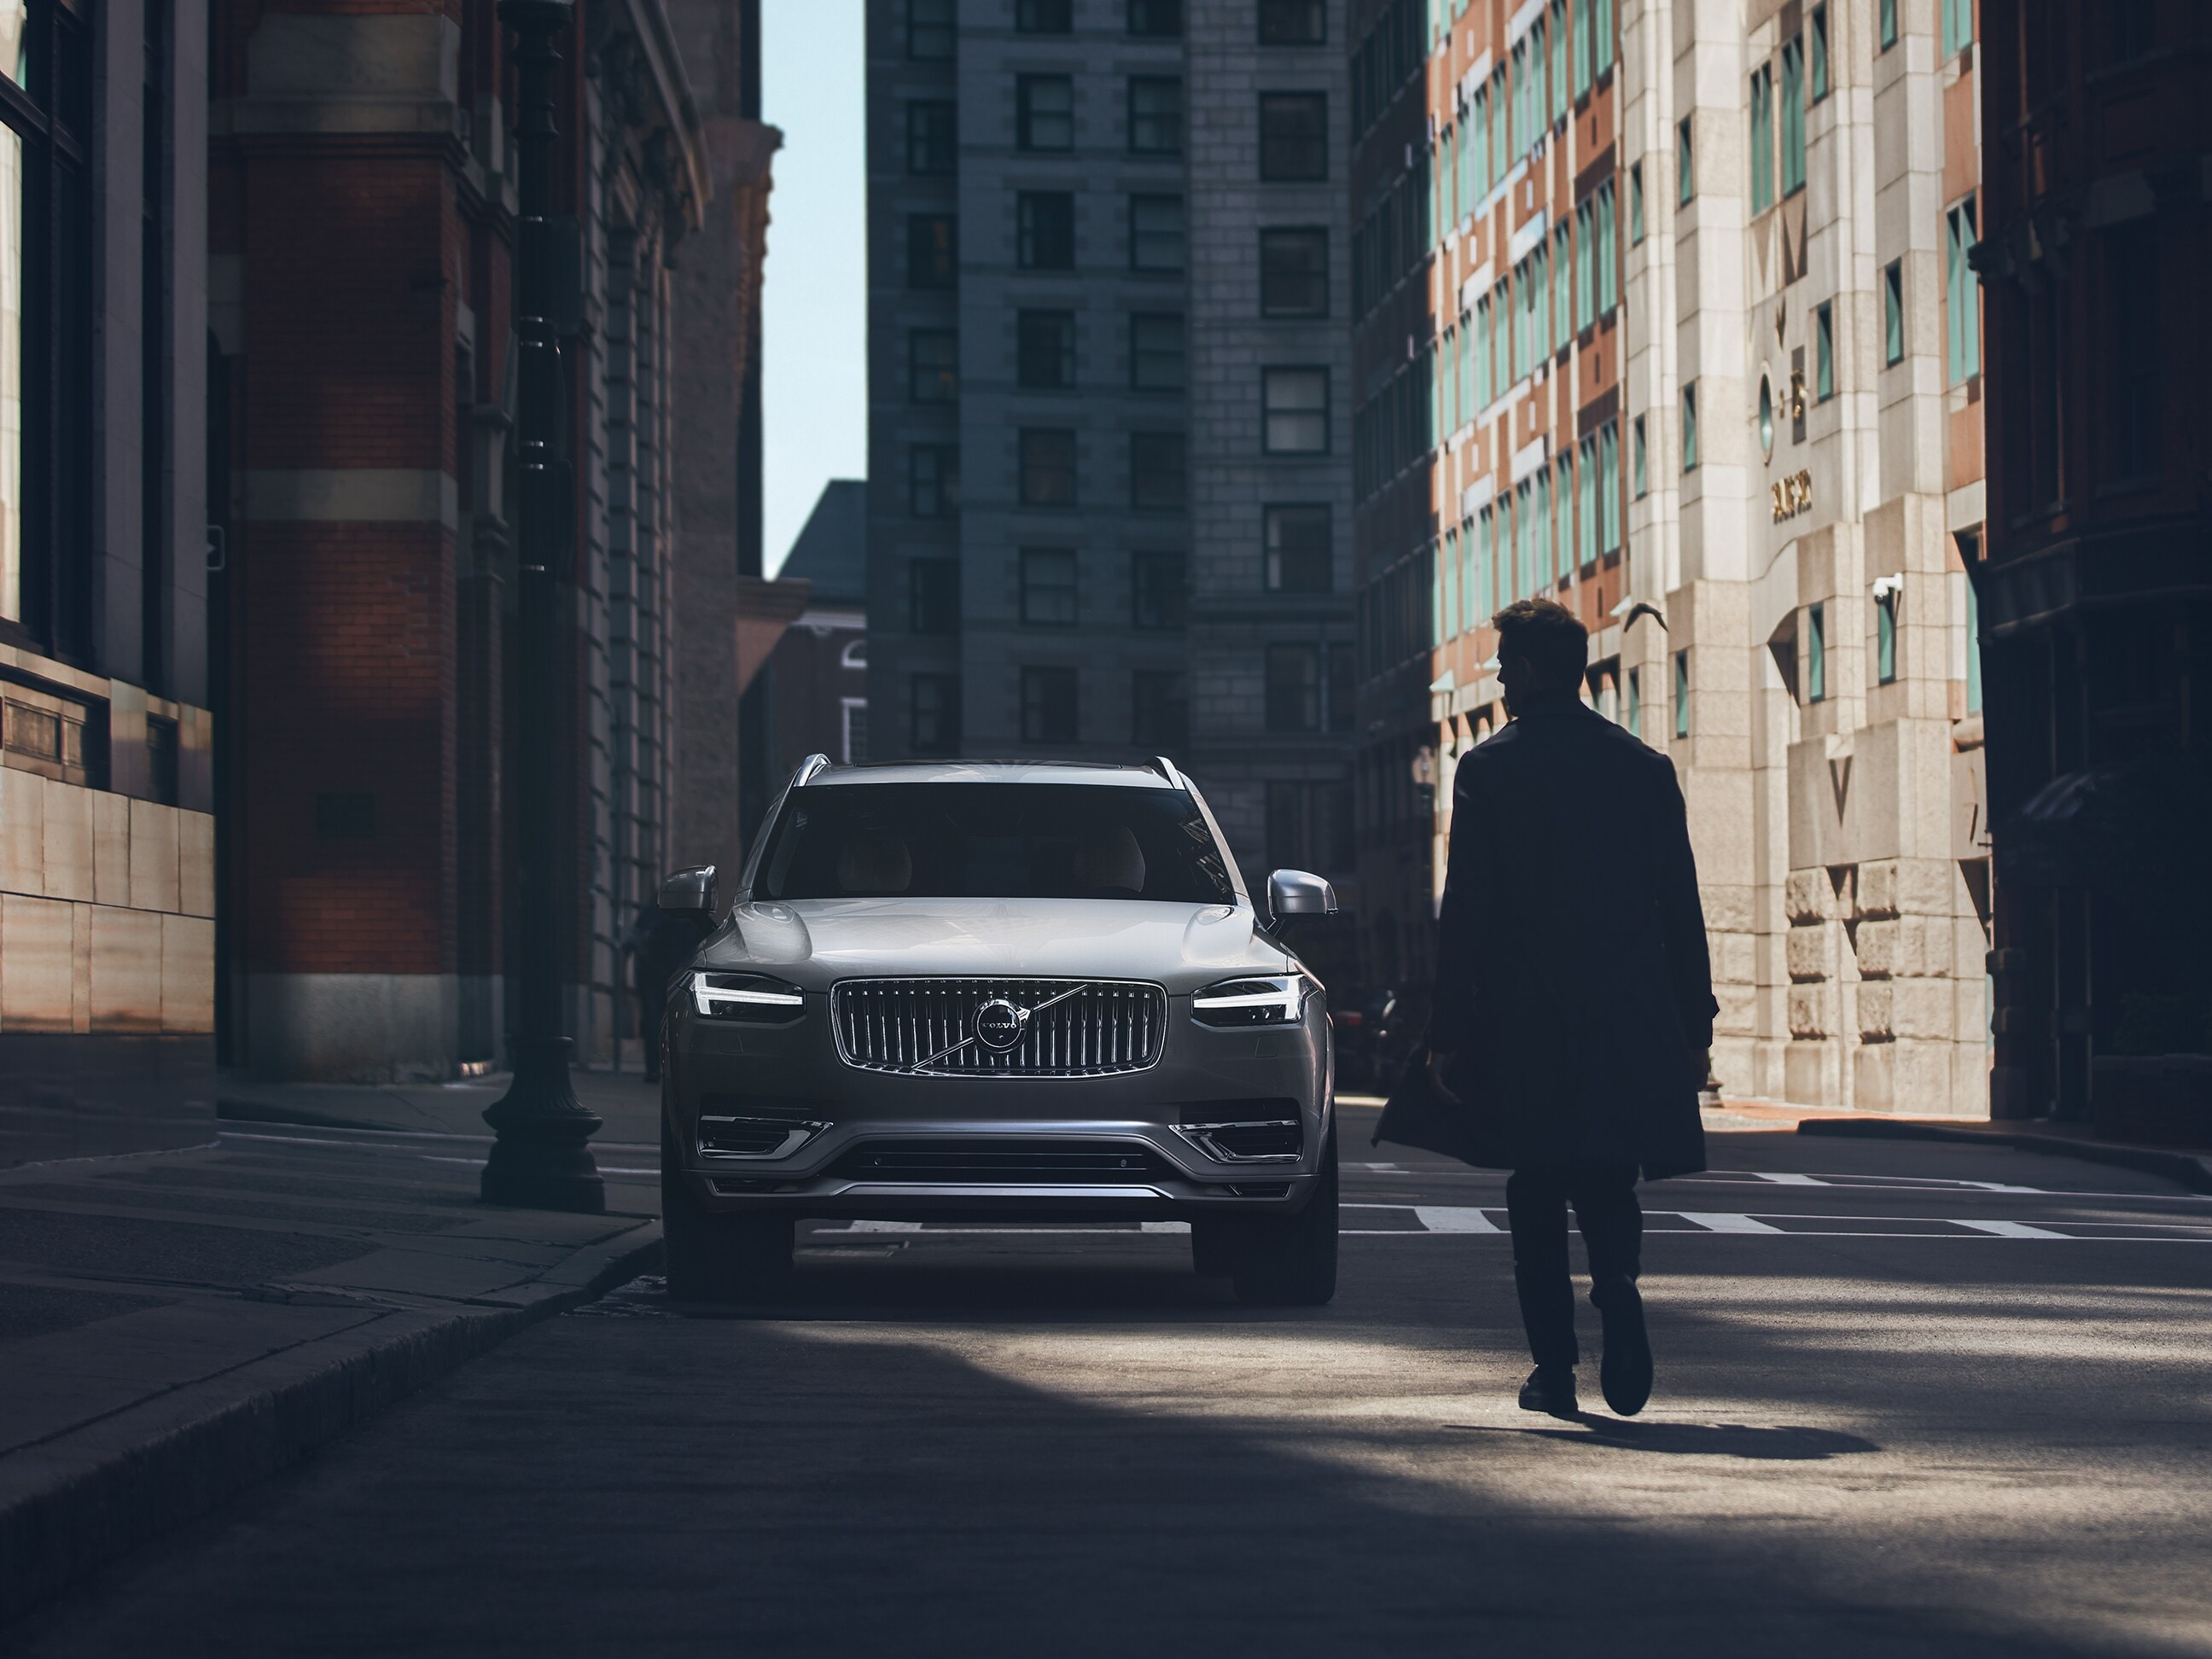 A man walks towards a Volvo XC90 parked on a city street